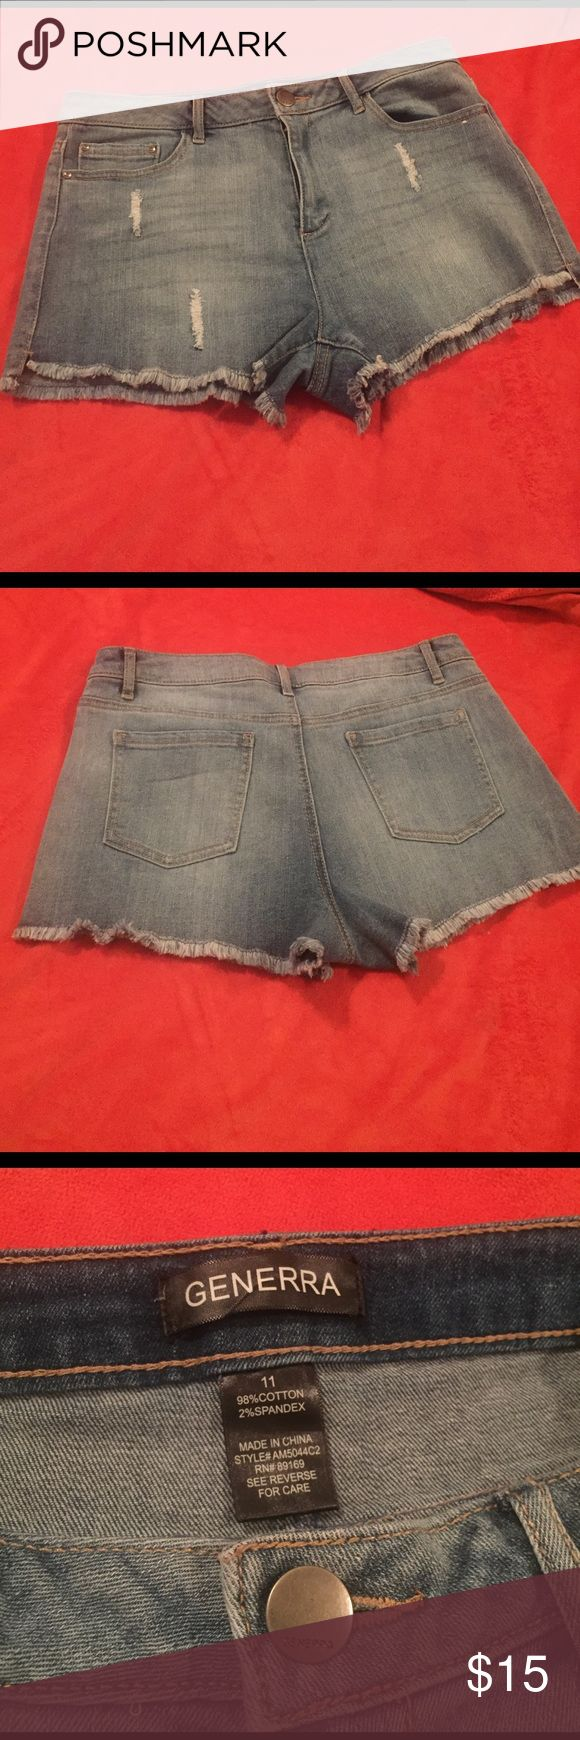 Generra Cutoff jean Shorts NWOT! Never worn! Everyone needs a basic pair of jean shorts that can be paired with anything! Summer and spring break must have! Generra Shorts Jean Shorts